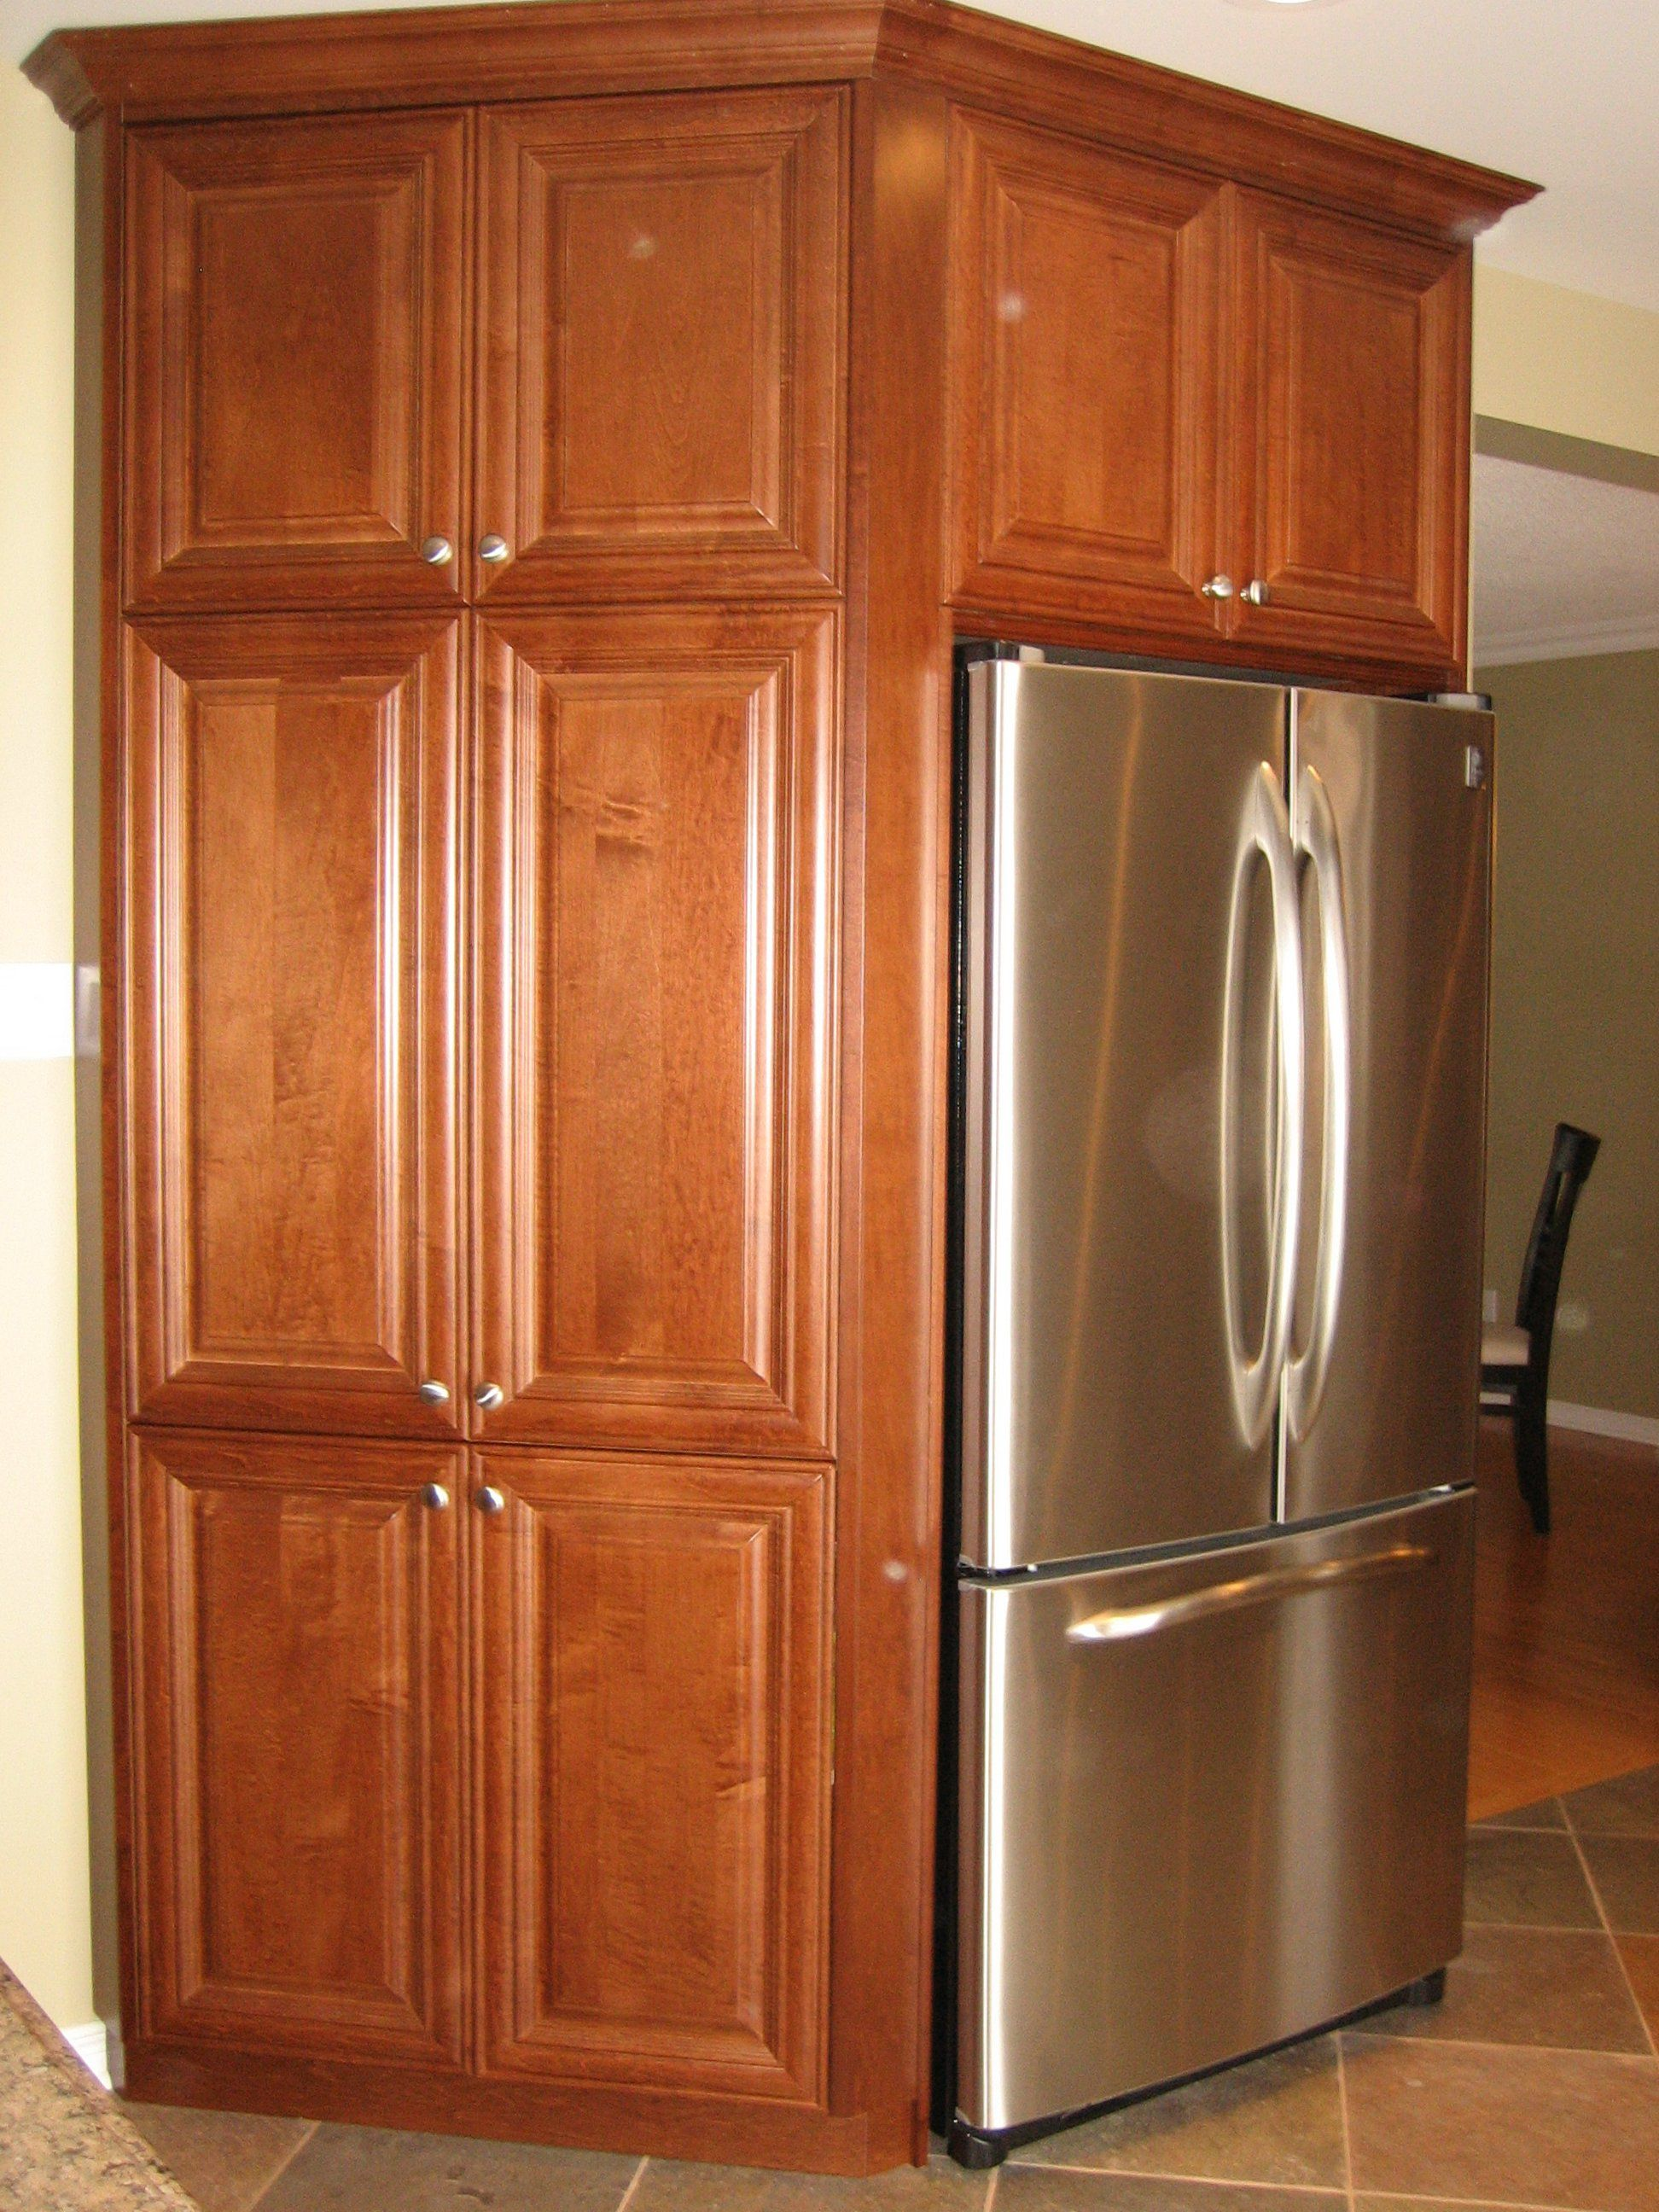 Angled Pantry Frames The Fridge Tall Cabinet Storage Kitchen Home Decor